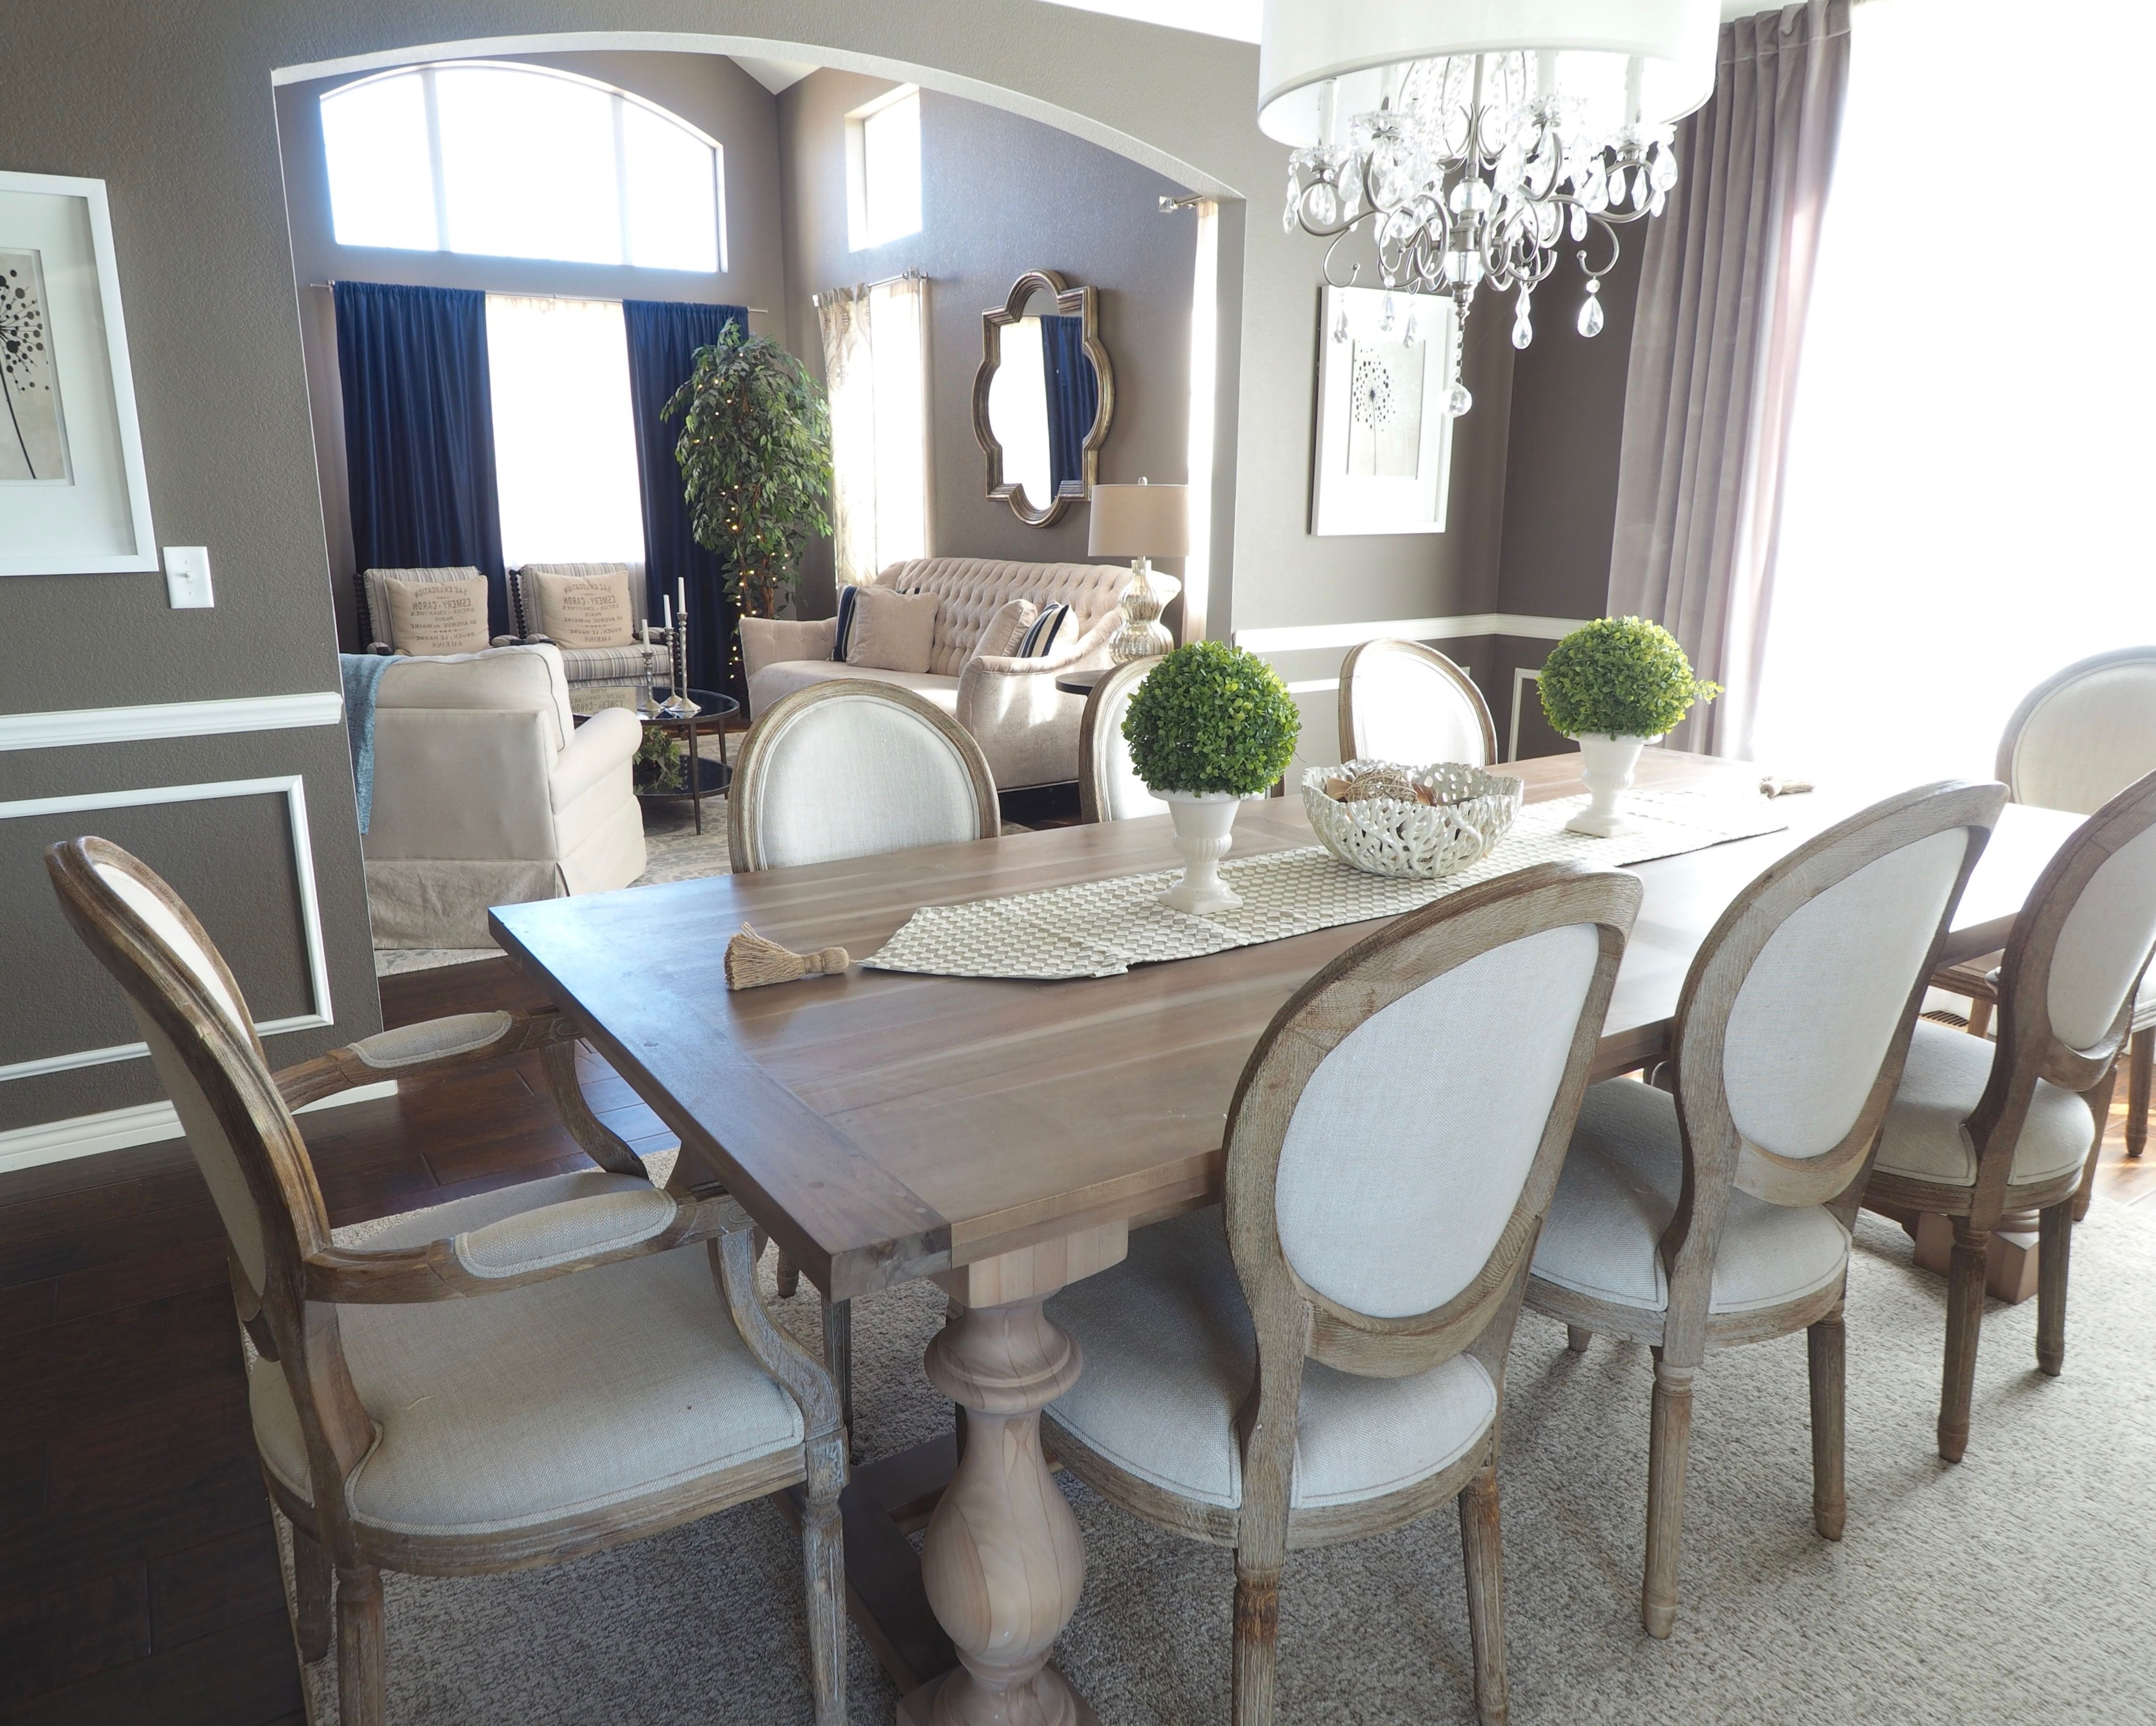 2017 Glam Dining Room Vintage Dining Room – Rustic Dining Room For Caira Black 5 Piece Round Dining Sets With Diamond Back Side Chairs (Gallery 15 of 25)